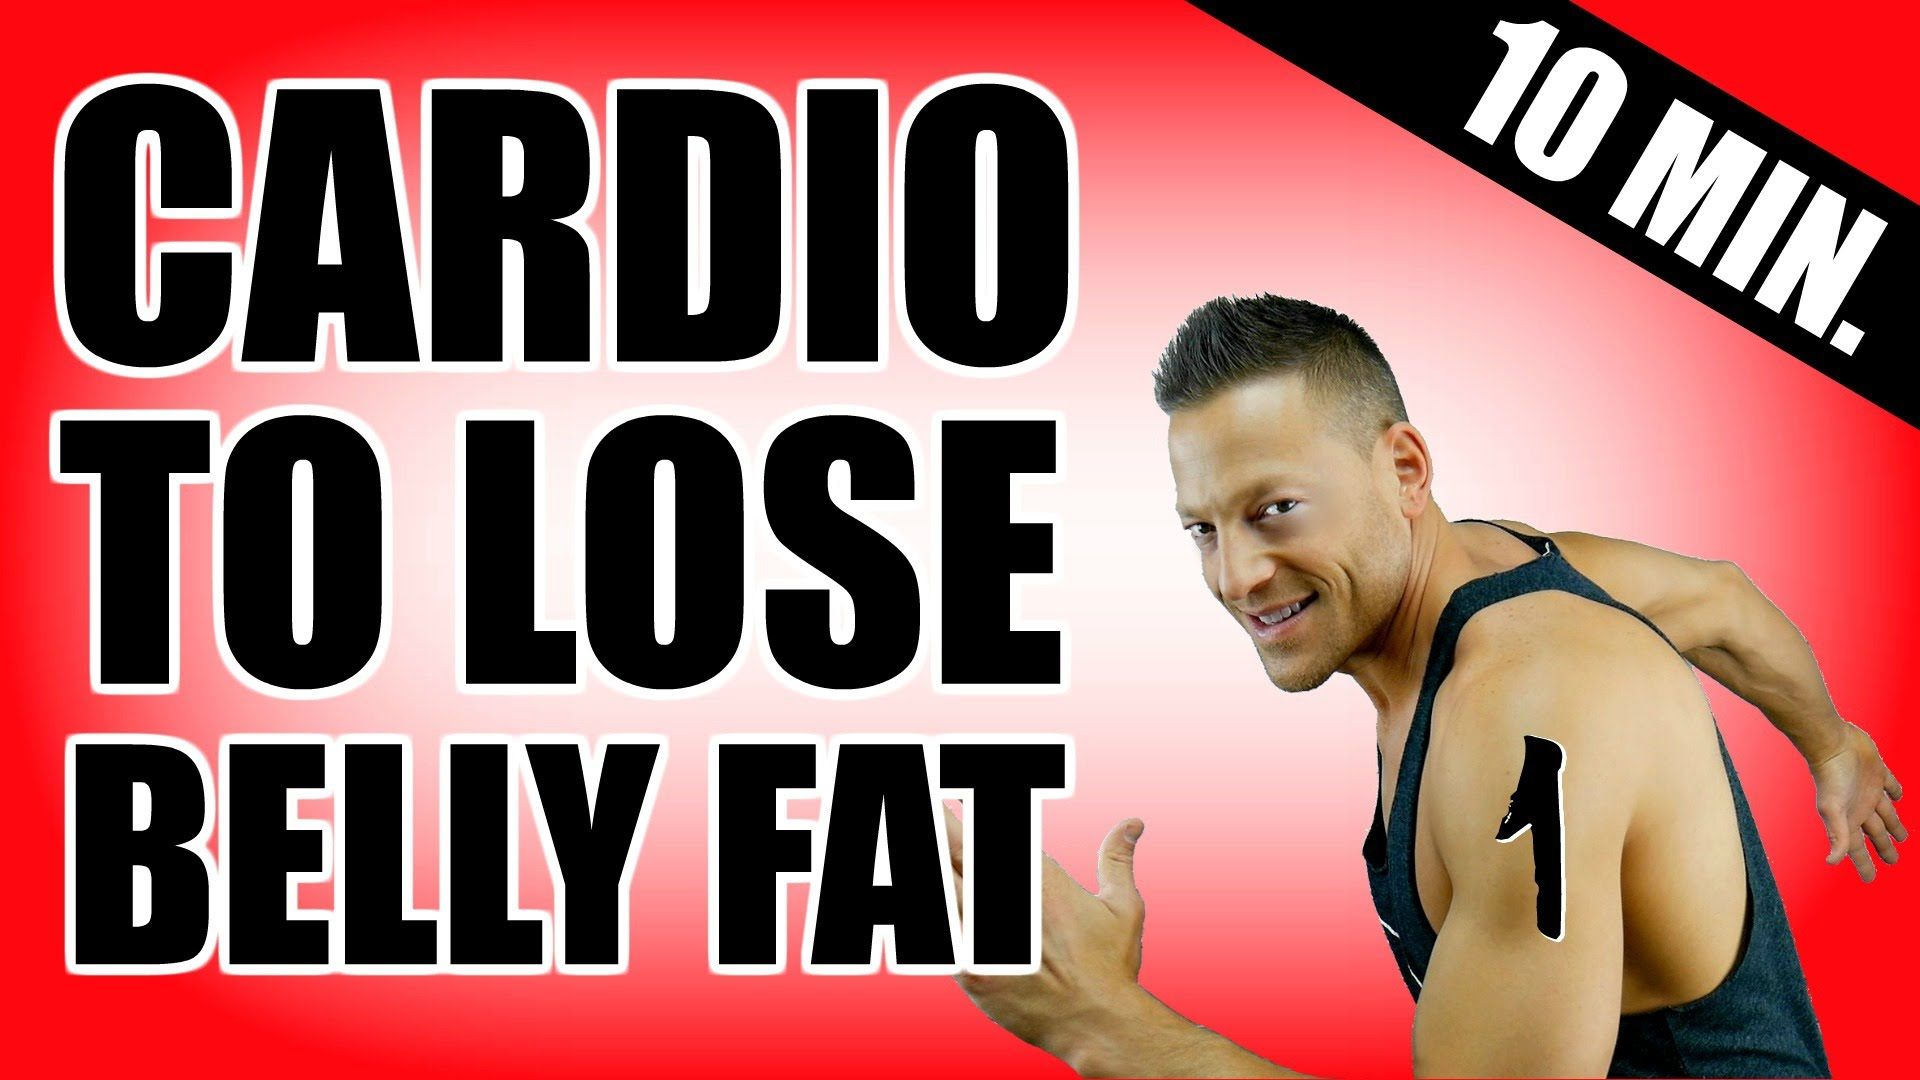 10 Minute Cardio for Fat Loss! - Eat. Fit. Fuel.